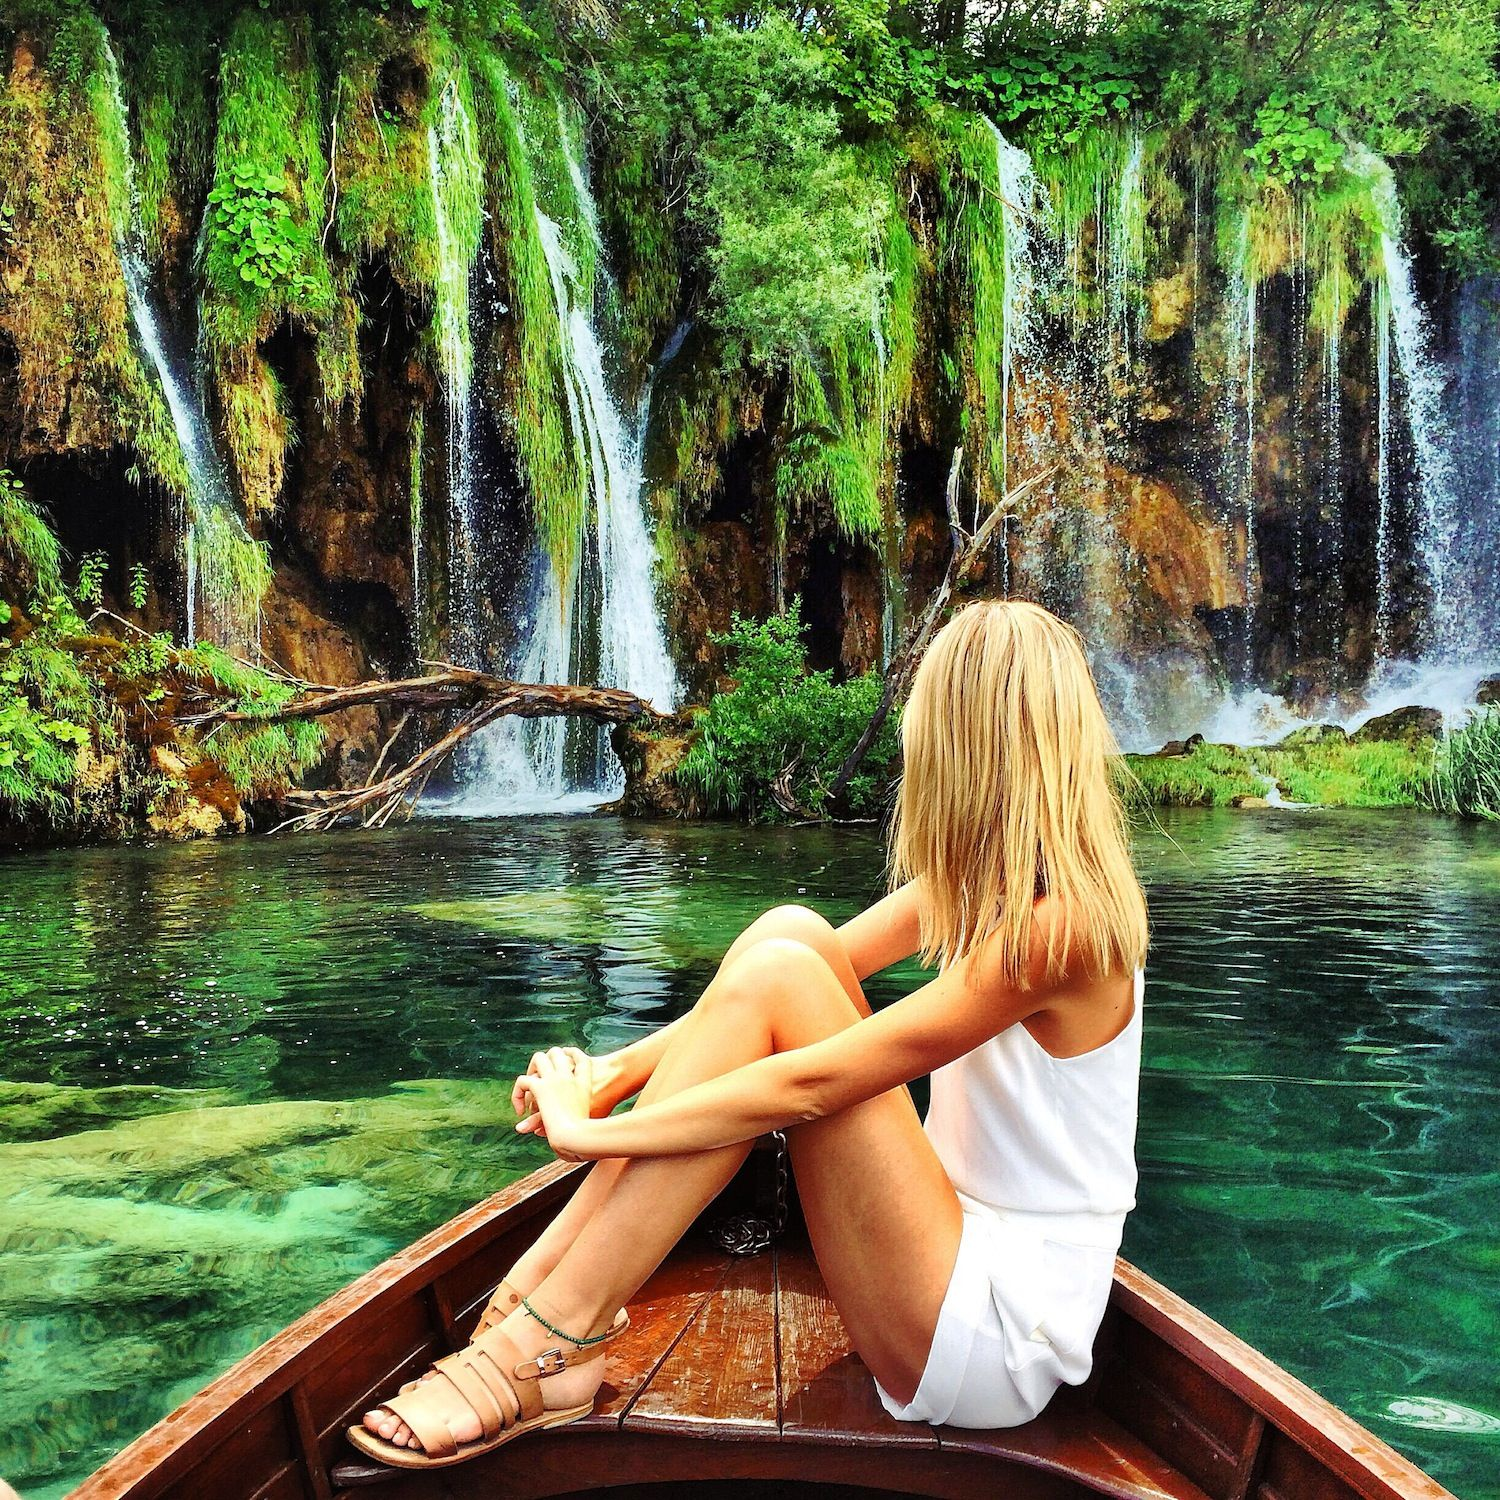 Plitvice Croatia Plitvice Lakes National Park Road Trip Zagreb Plitvice Sibenik Krka Split Dubrovnik Plitvice Lakes Travel Moments Travel Pictures